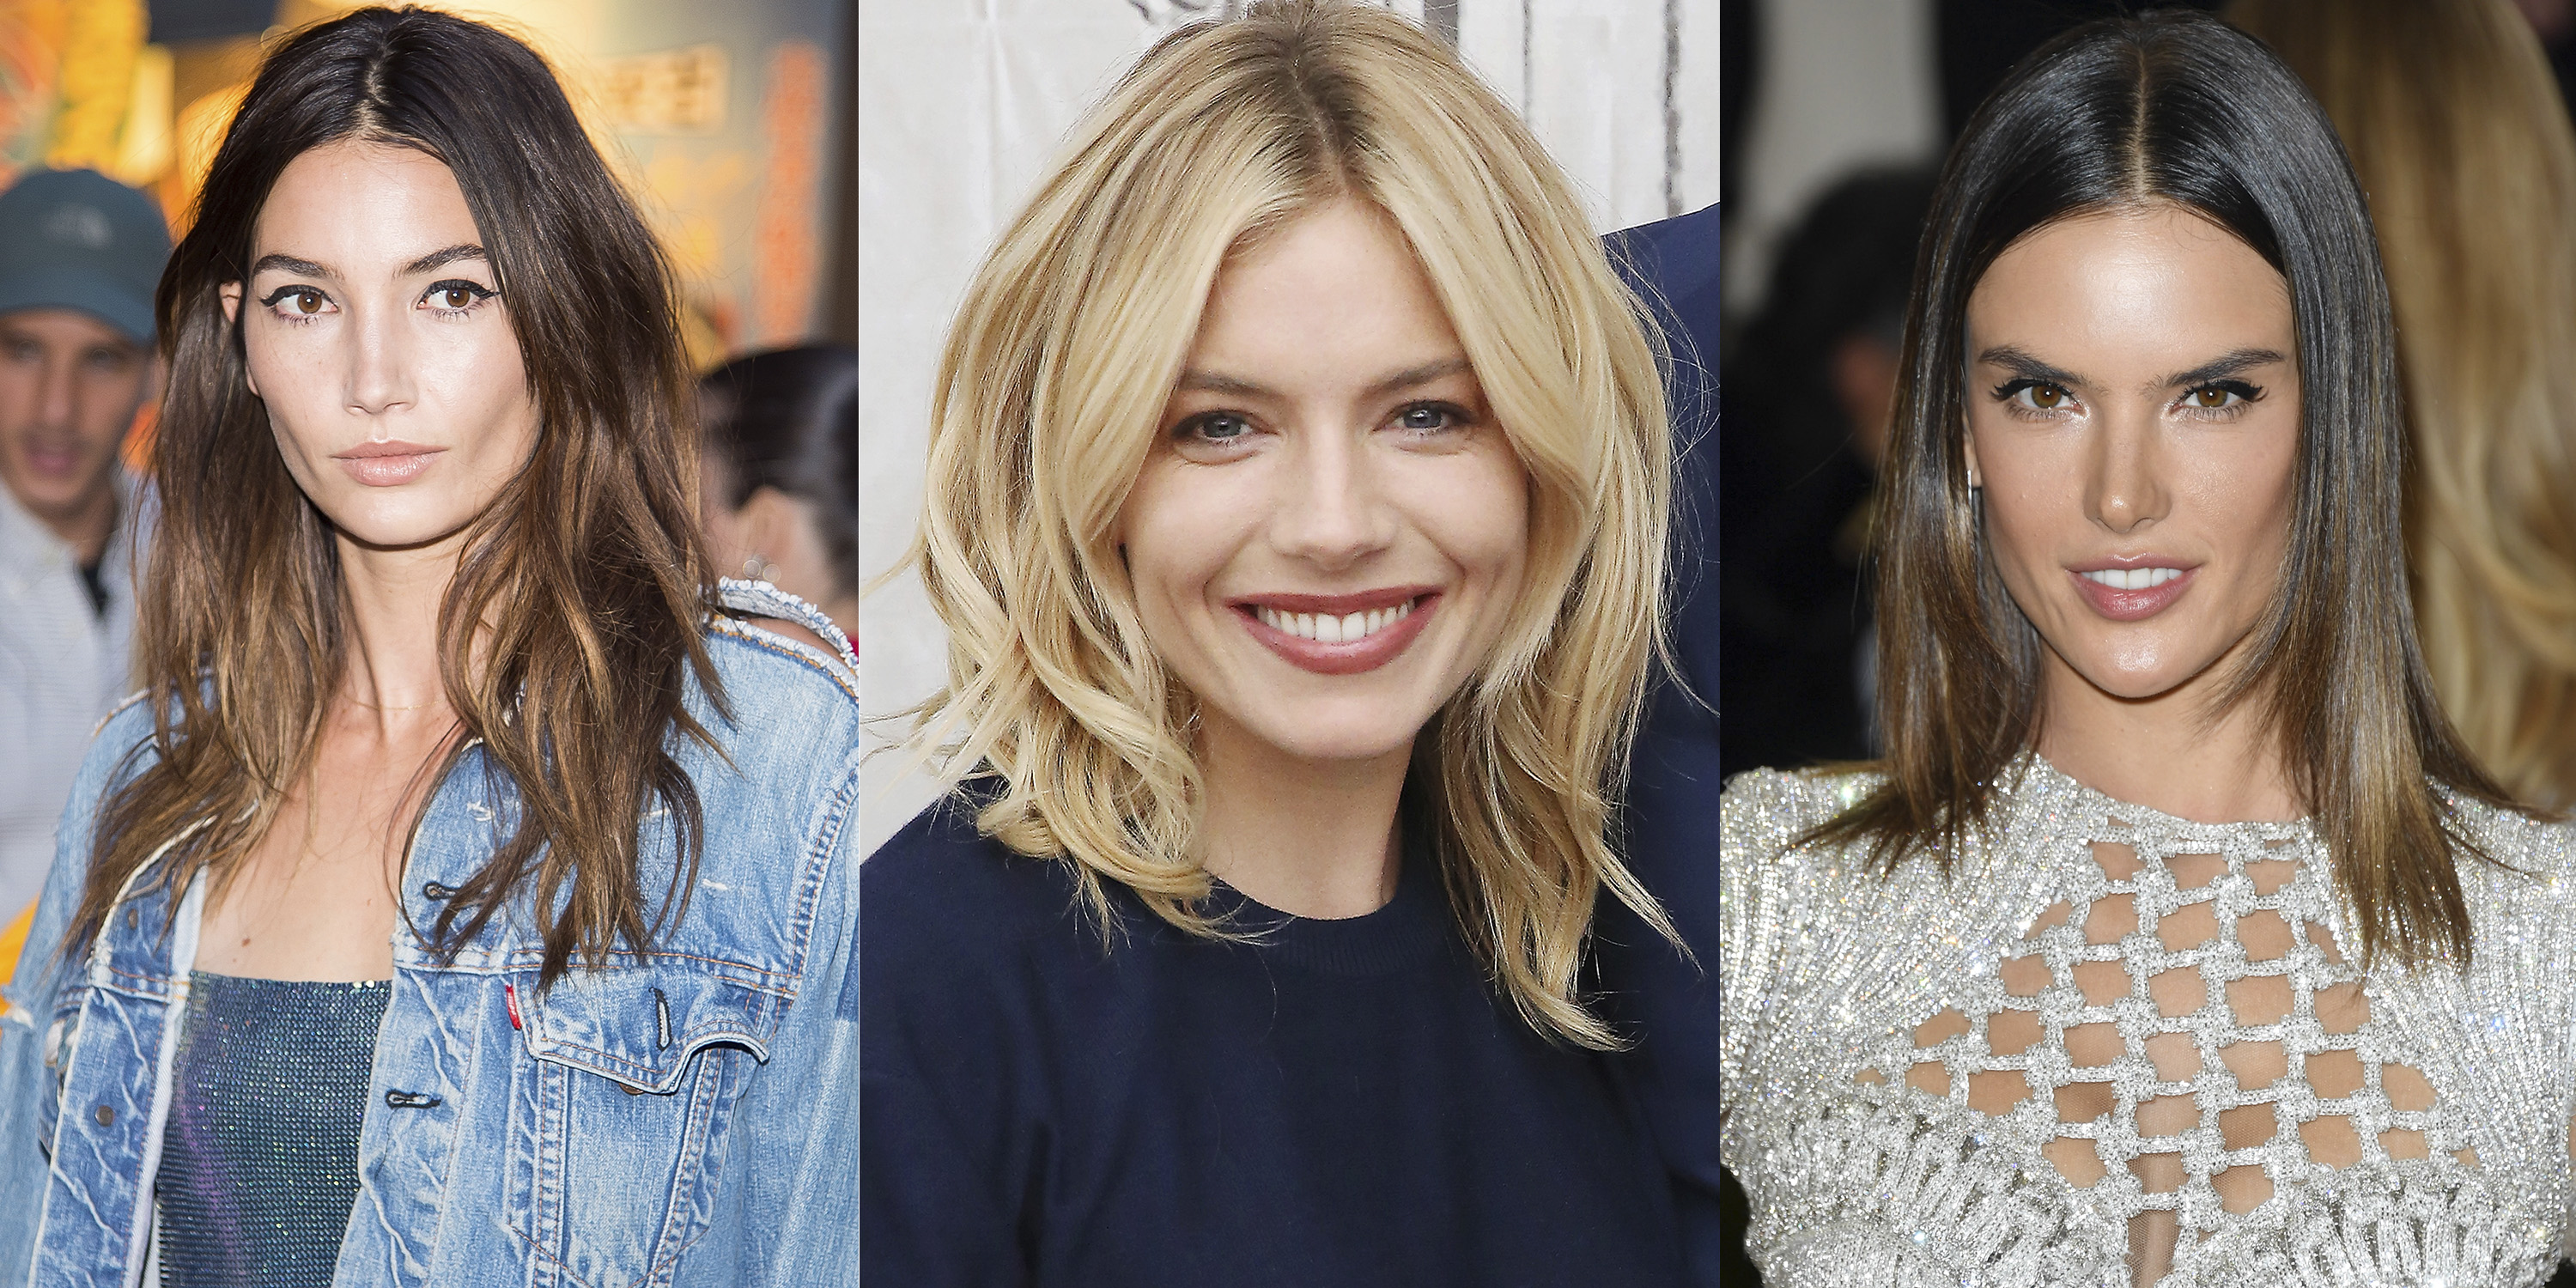 Make Life Easier The Top 10 Haircuts For Summer